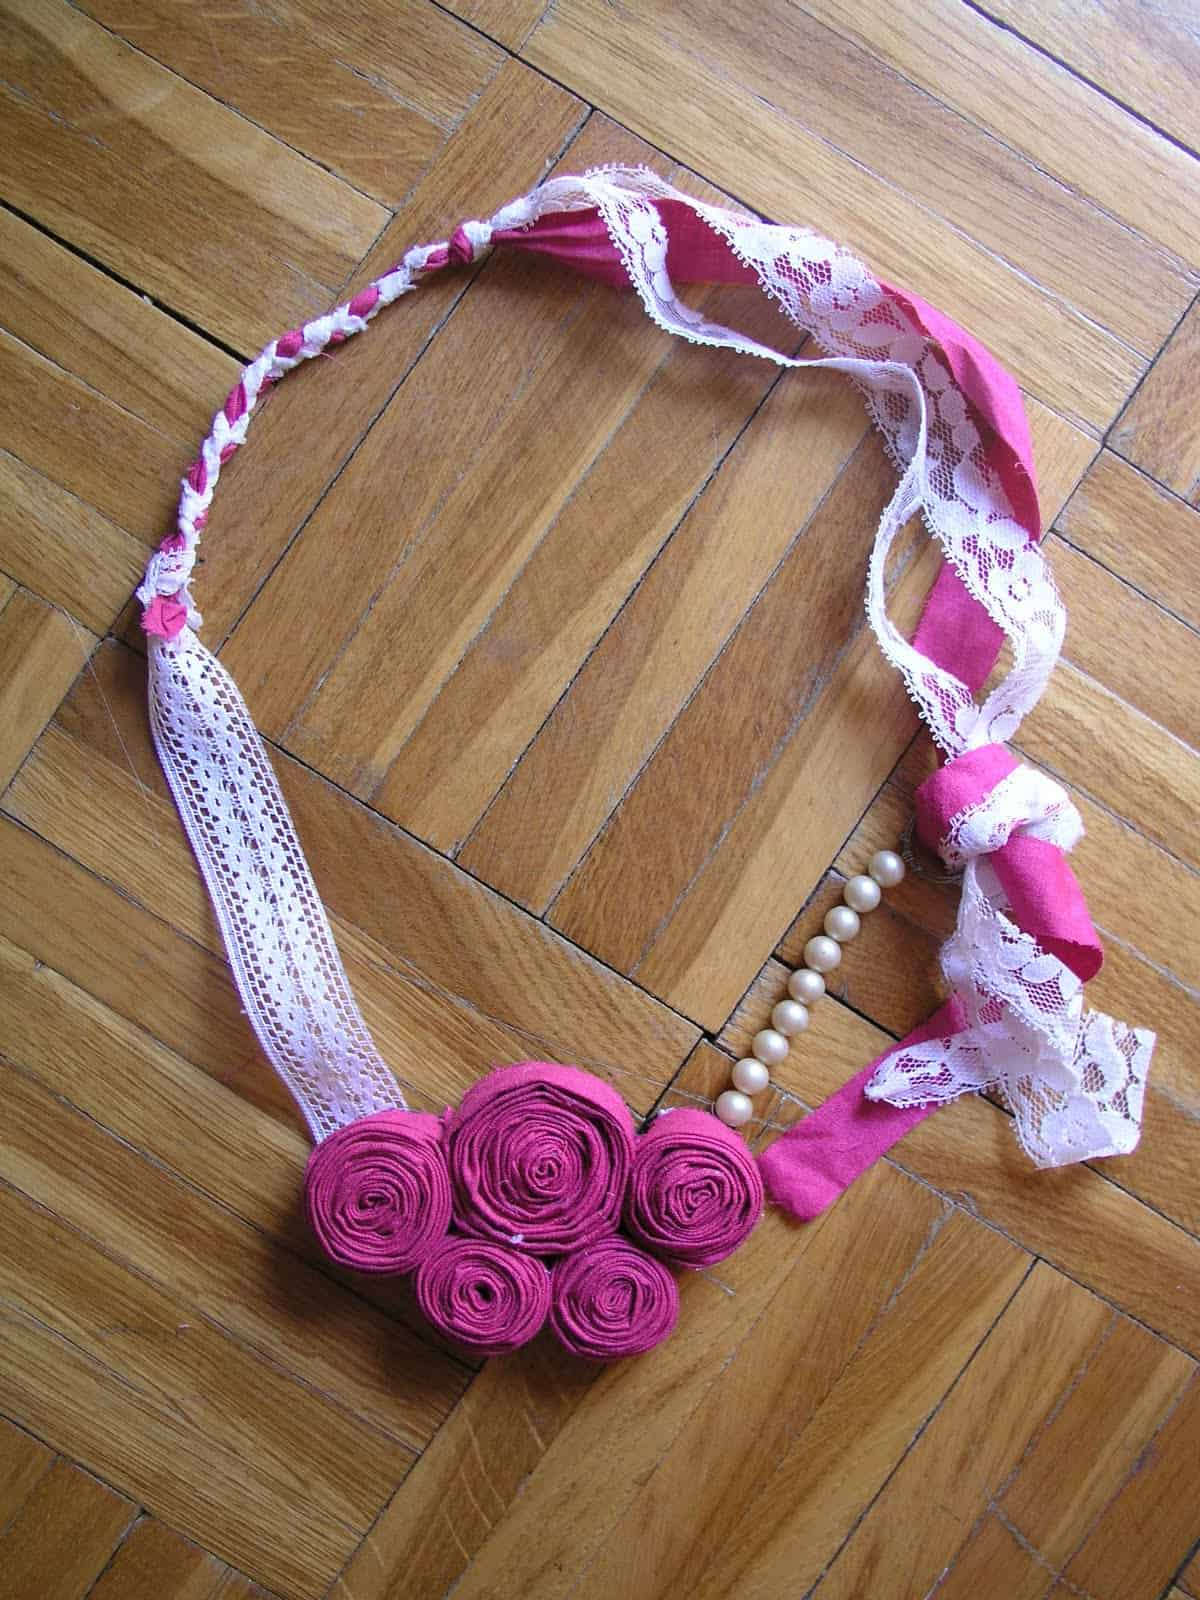 Spiralled blossom lace and fabric necklace